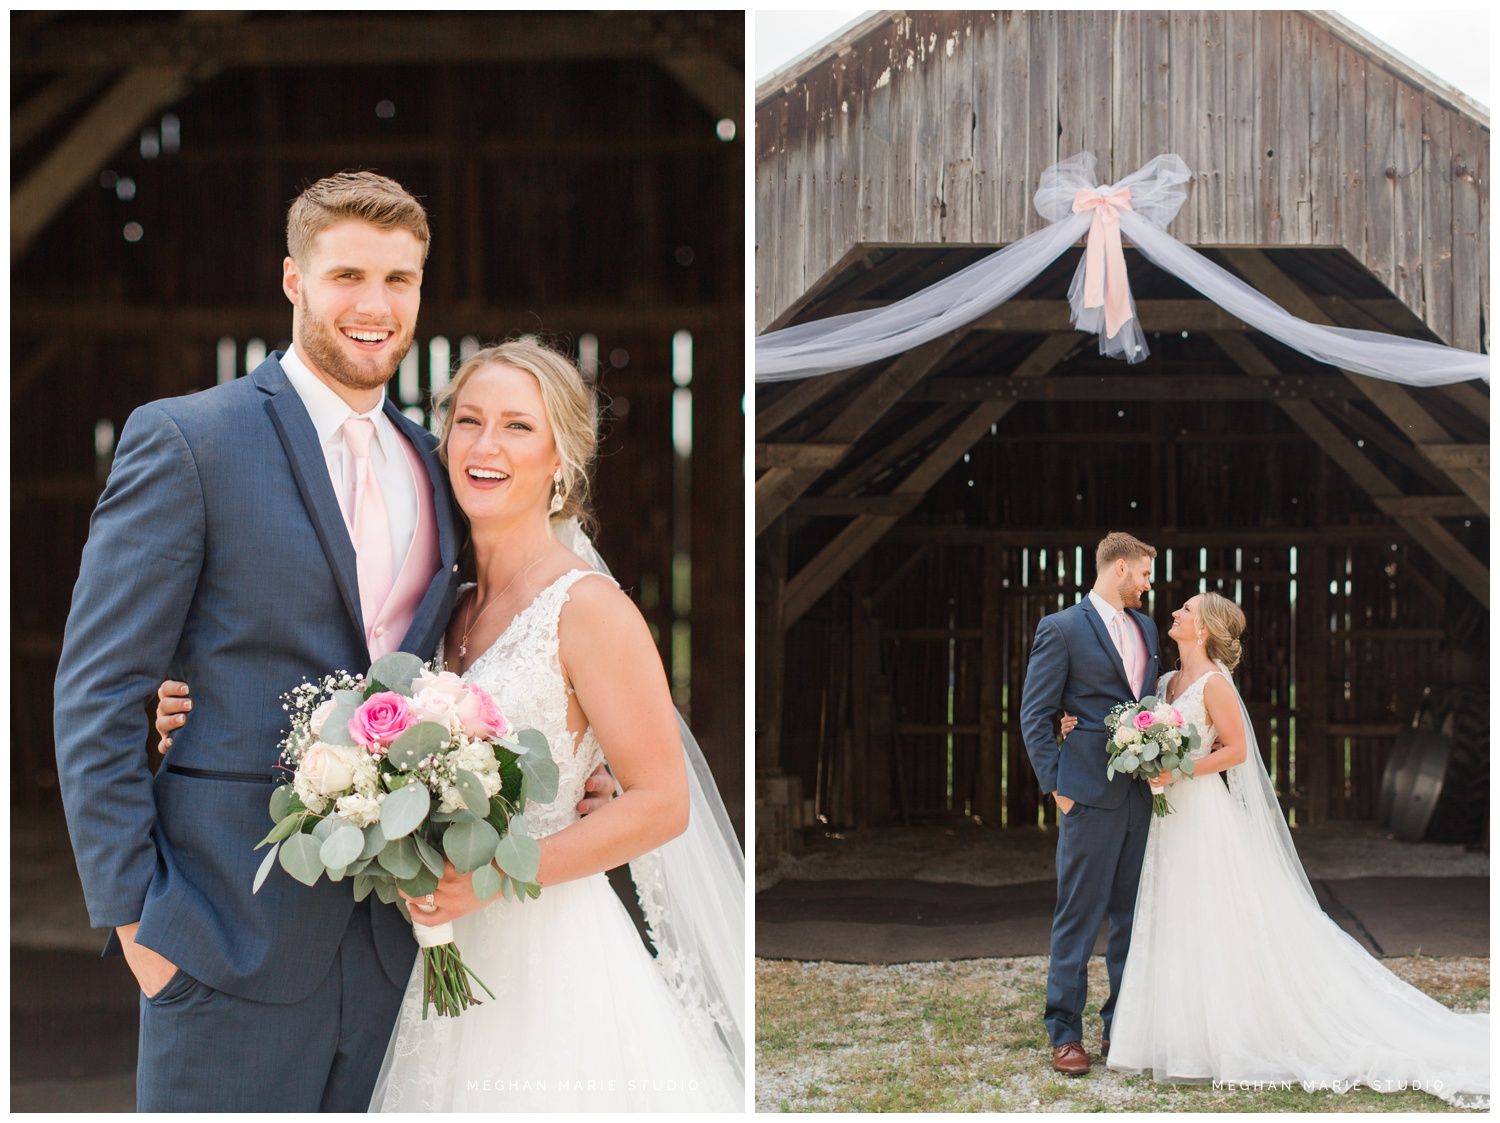 meghan marie studio ohio wedding kyle ahrens msu michigan state basketball spartans navy blush rustic barn soft warm bright bubbles catholic church_0384.jpg